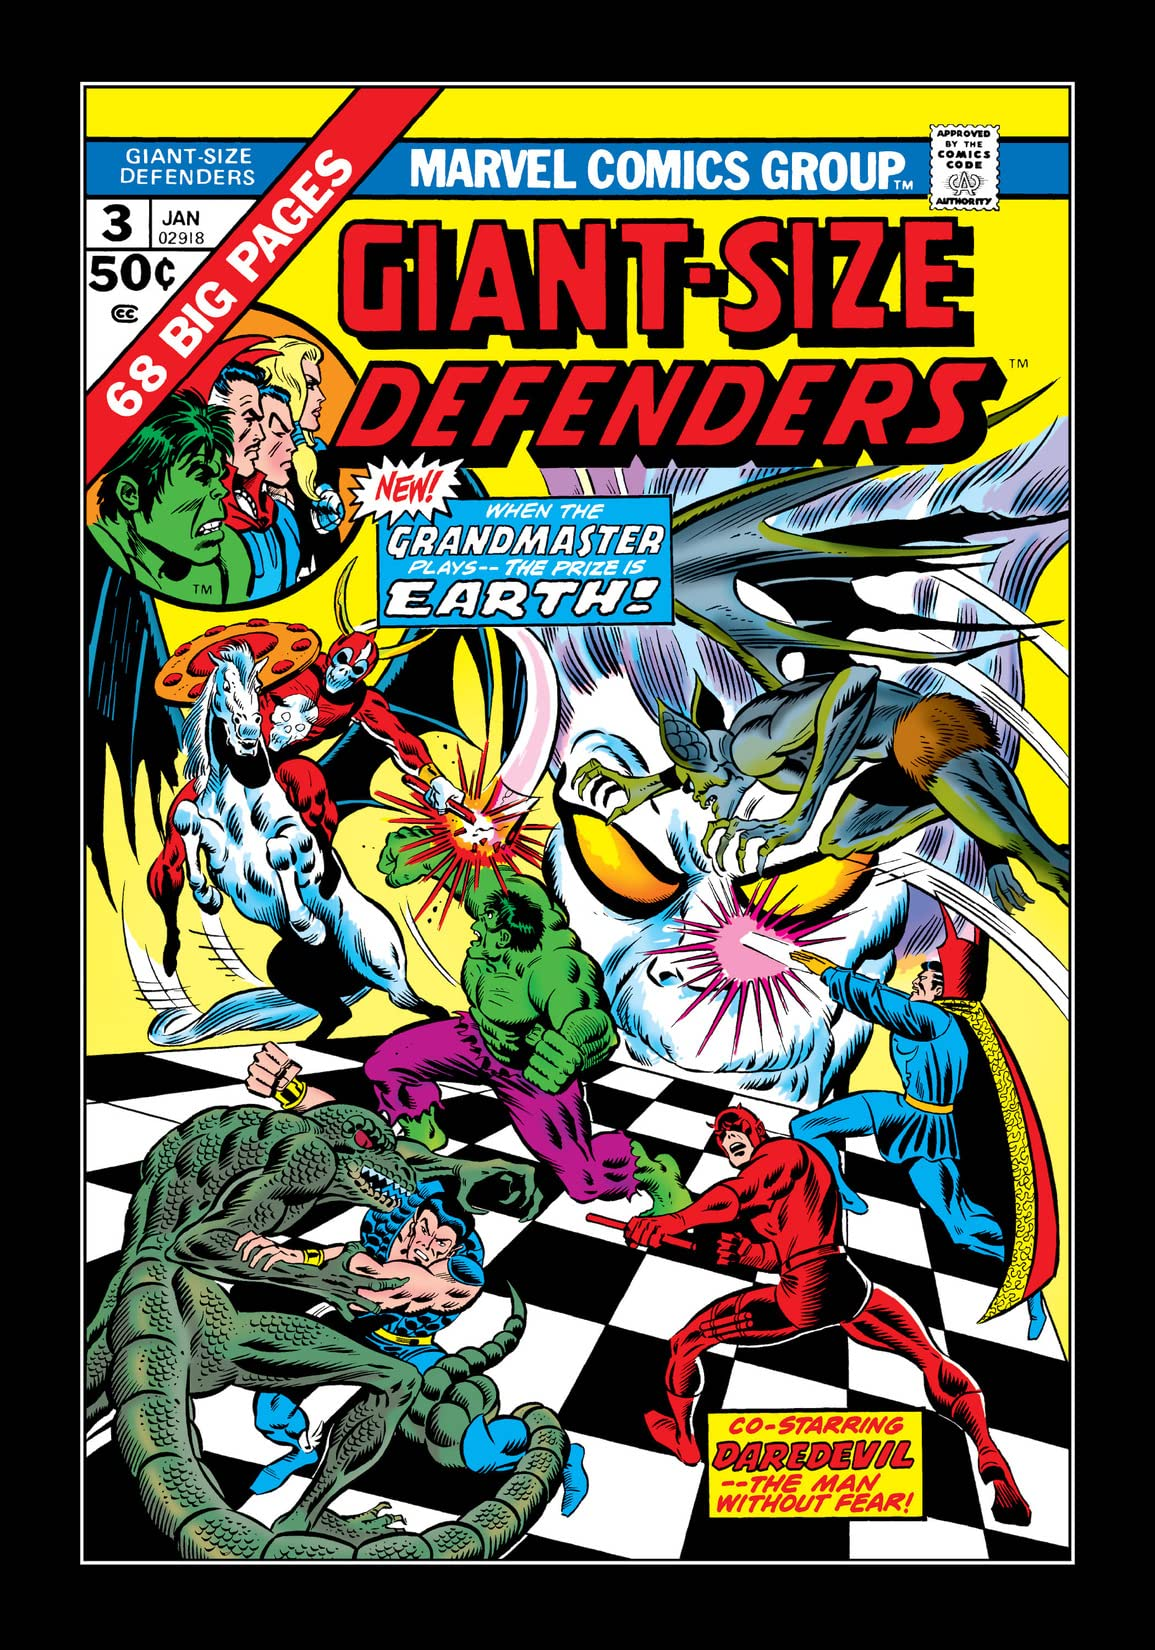 Giant-Size Defenders (1974-1975) #3